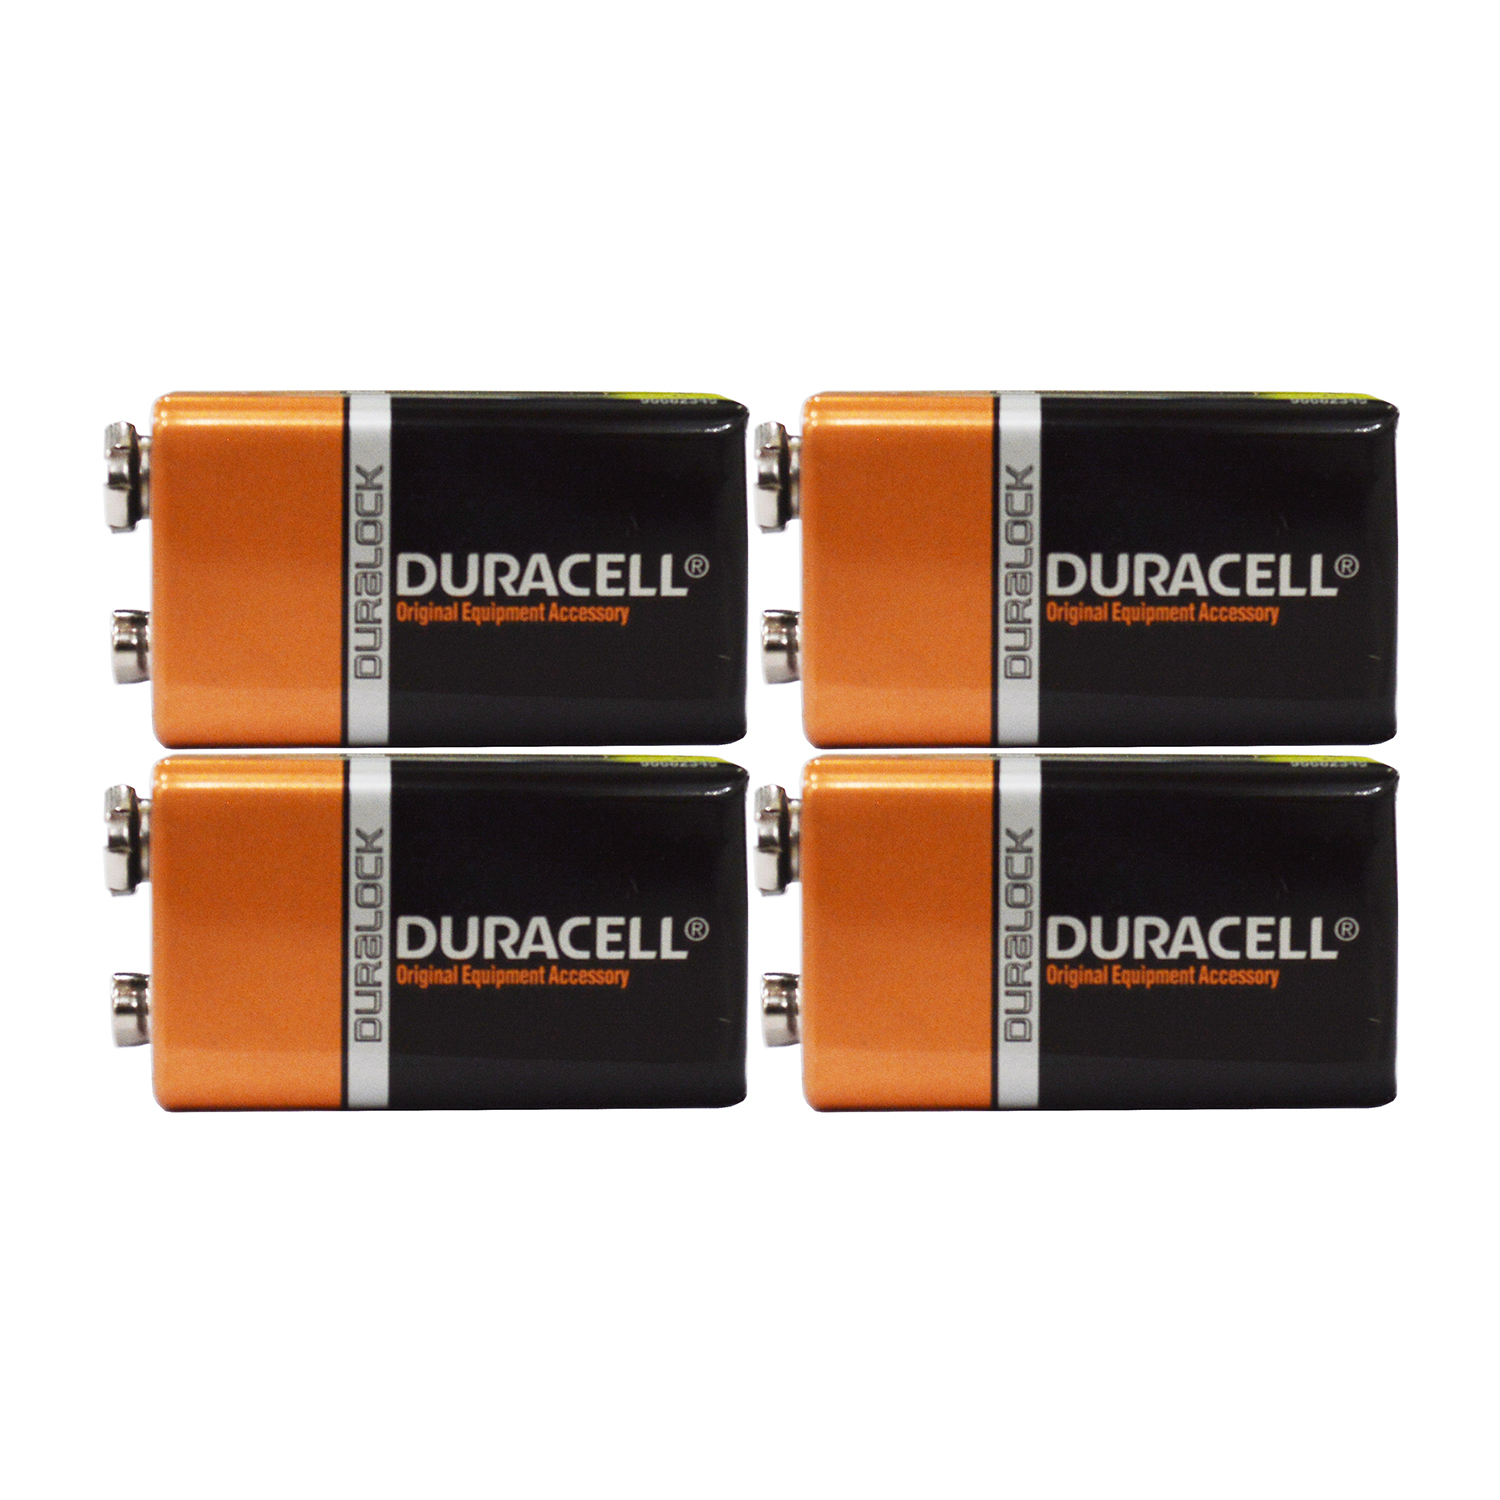 4 Count - Duracell MN1604 9V Volt 6LR61 Duralock Coppertop Alkaline Batteries